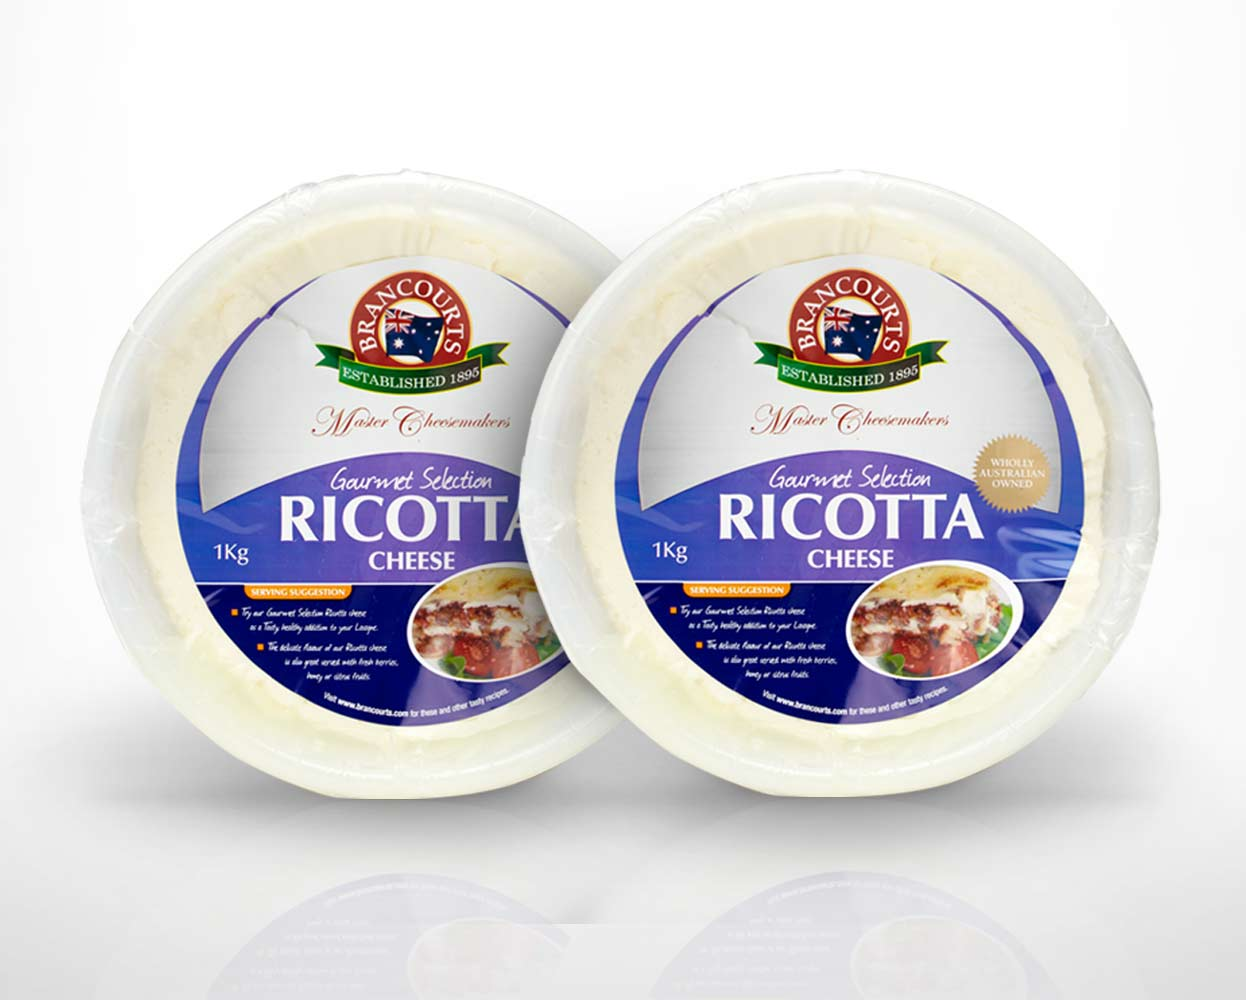 Brancourts_packaging_ricotta